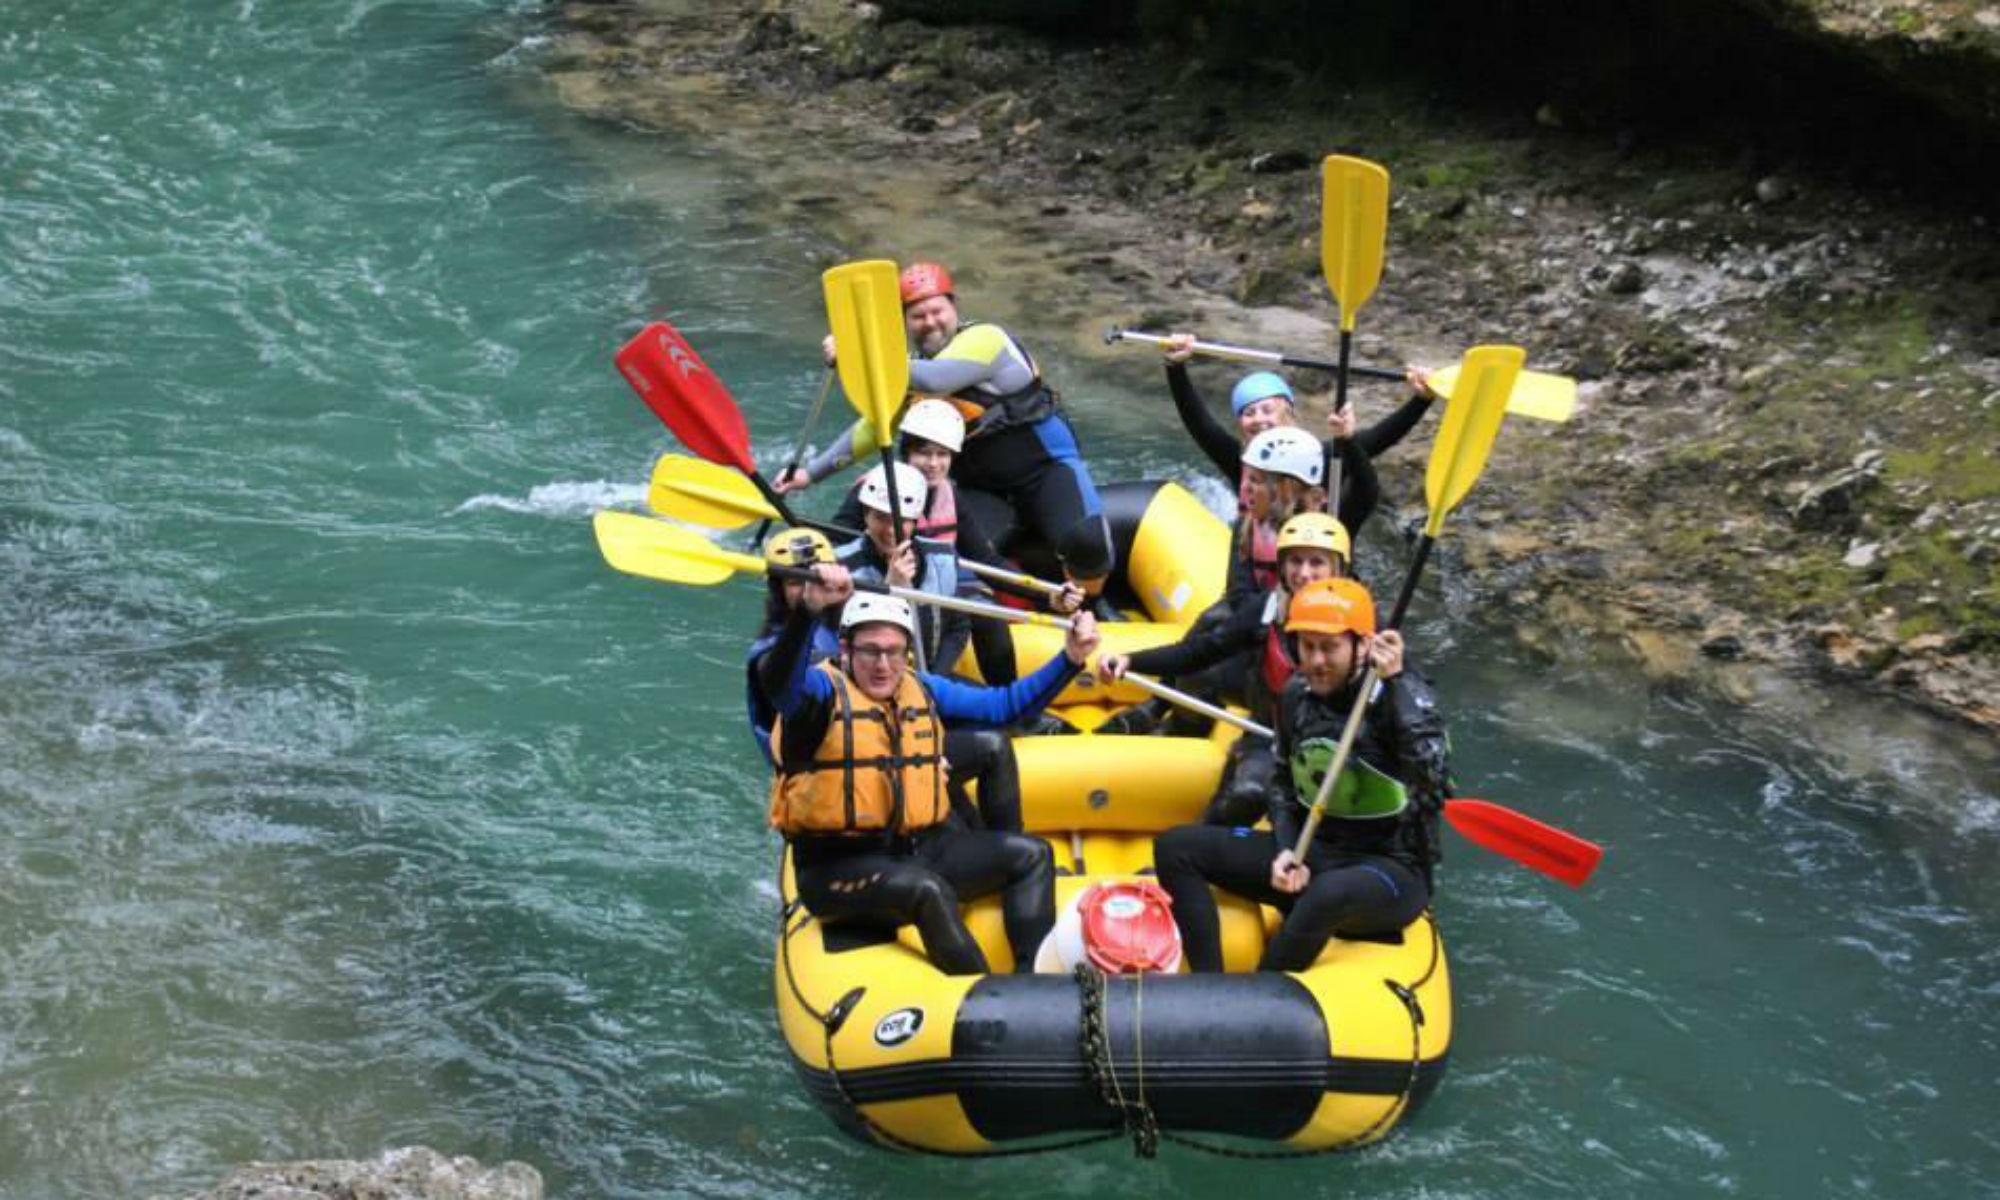 A group of people in a rubber dinghy on the Salza River while out white water rafting in Austria.